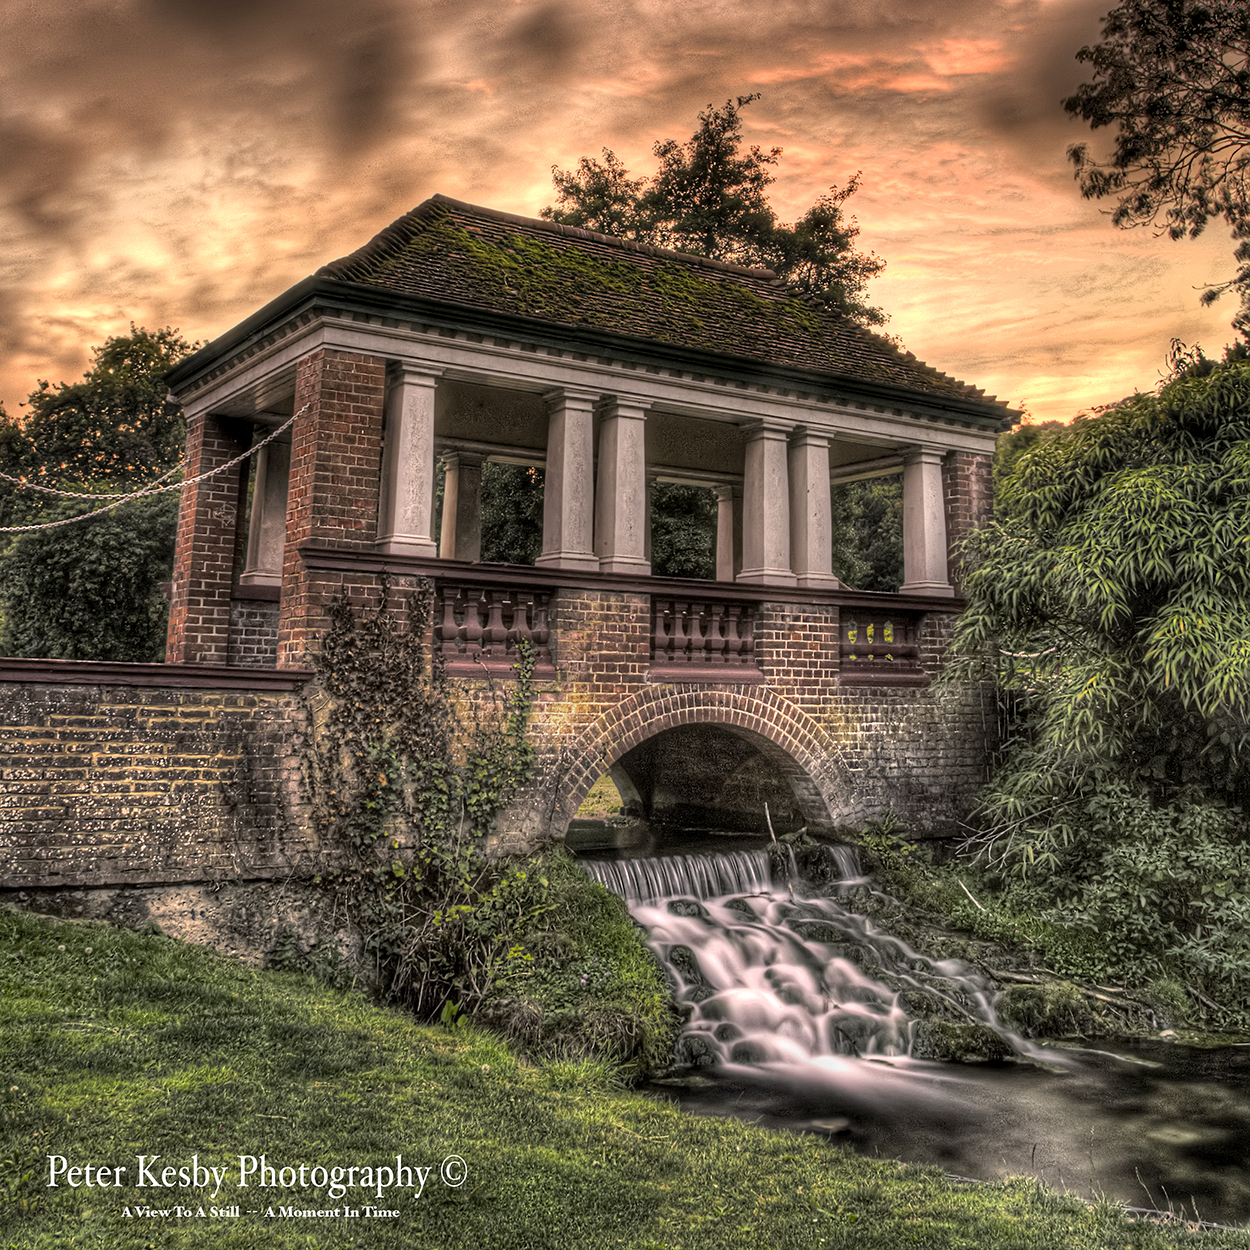 River & Temple Ewell - Peter